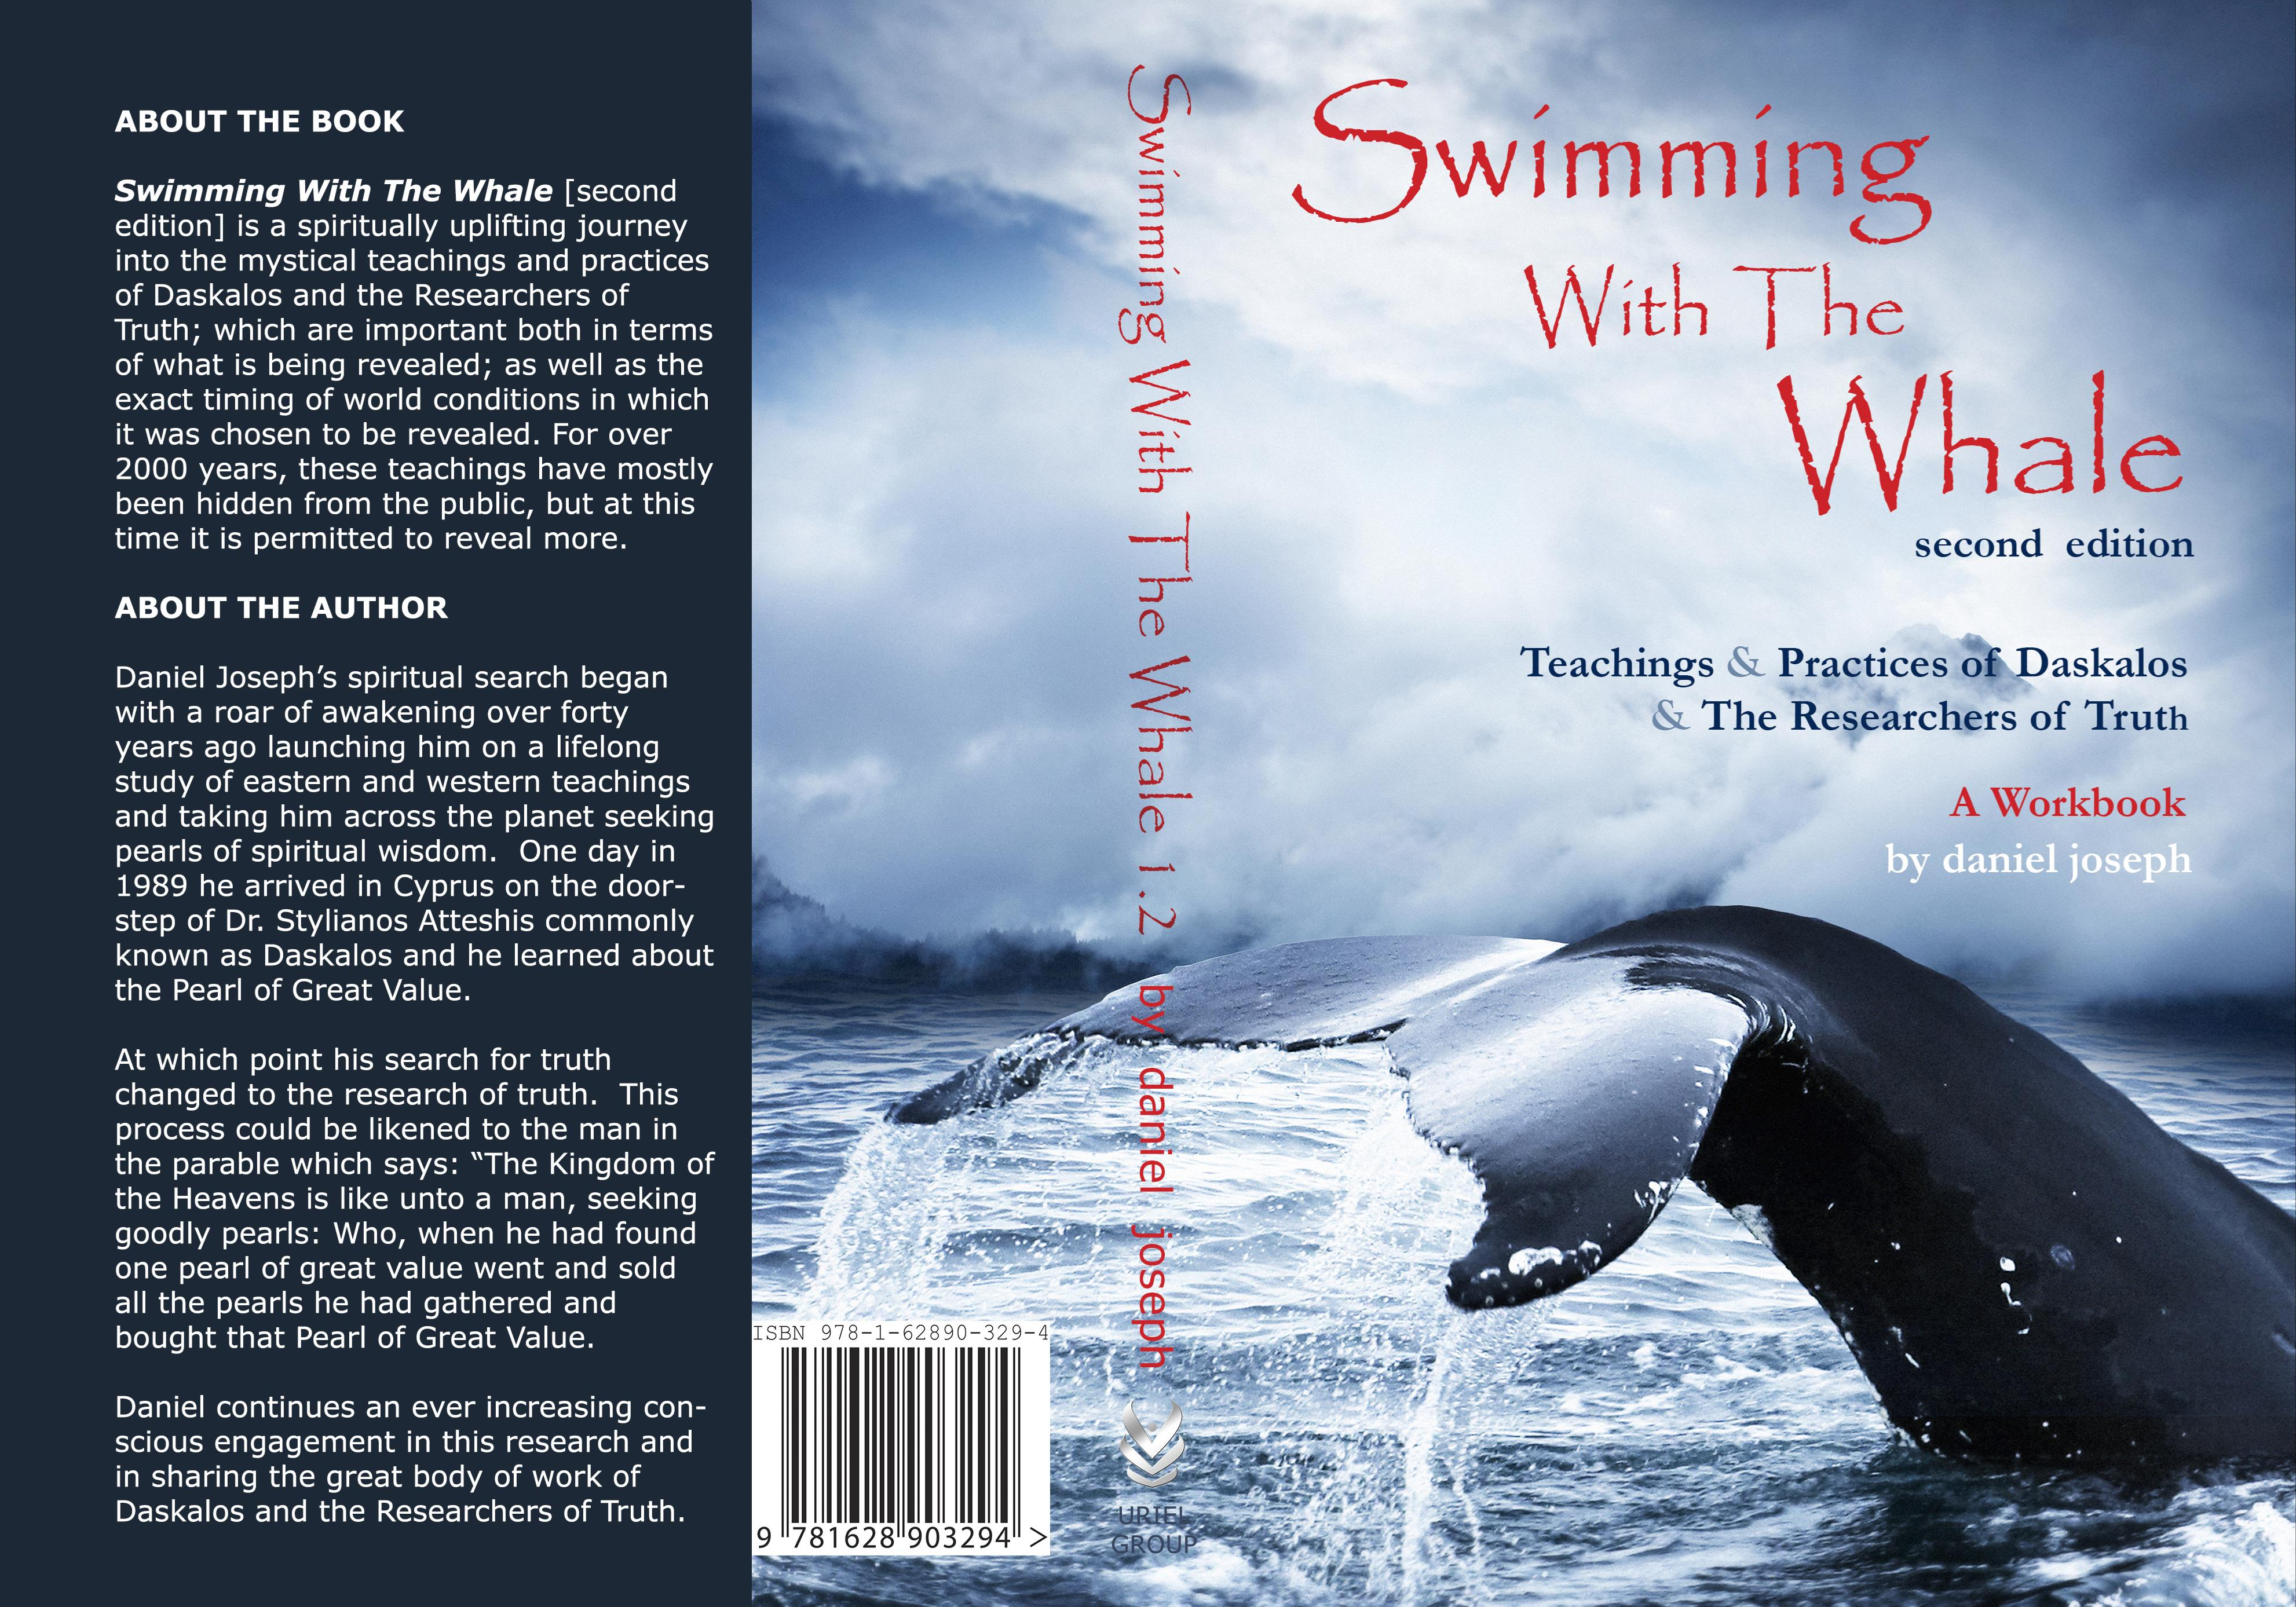 Swimming With The Whale cover image